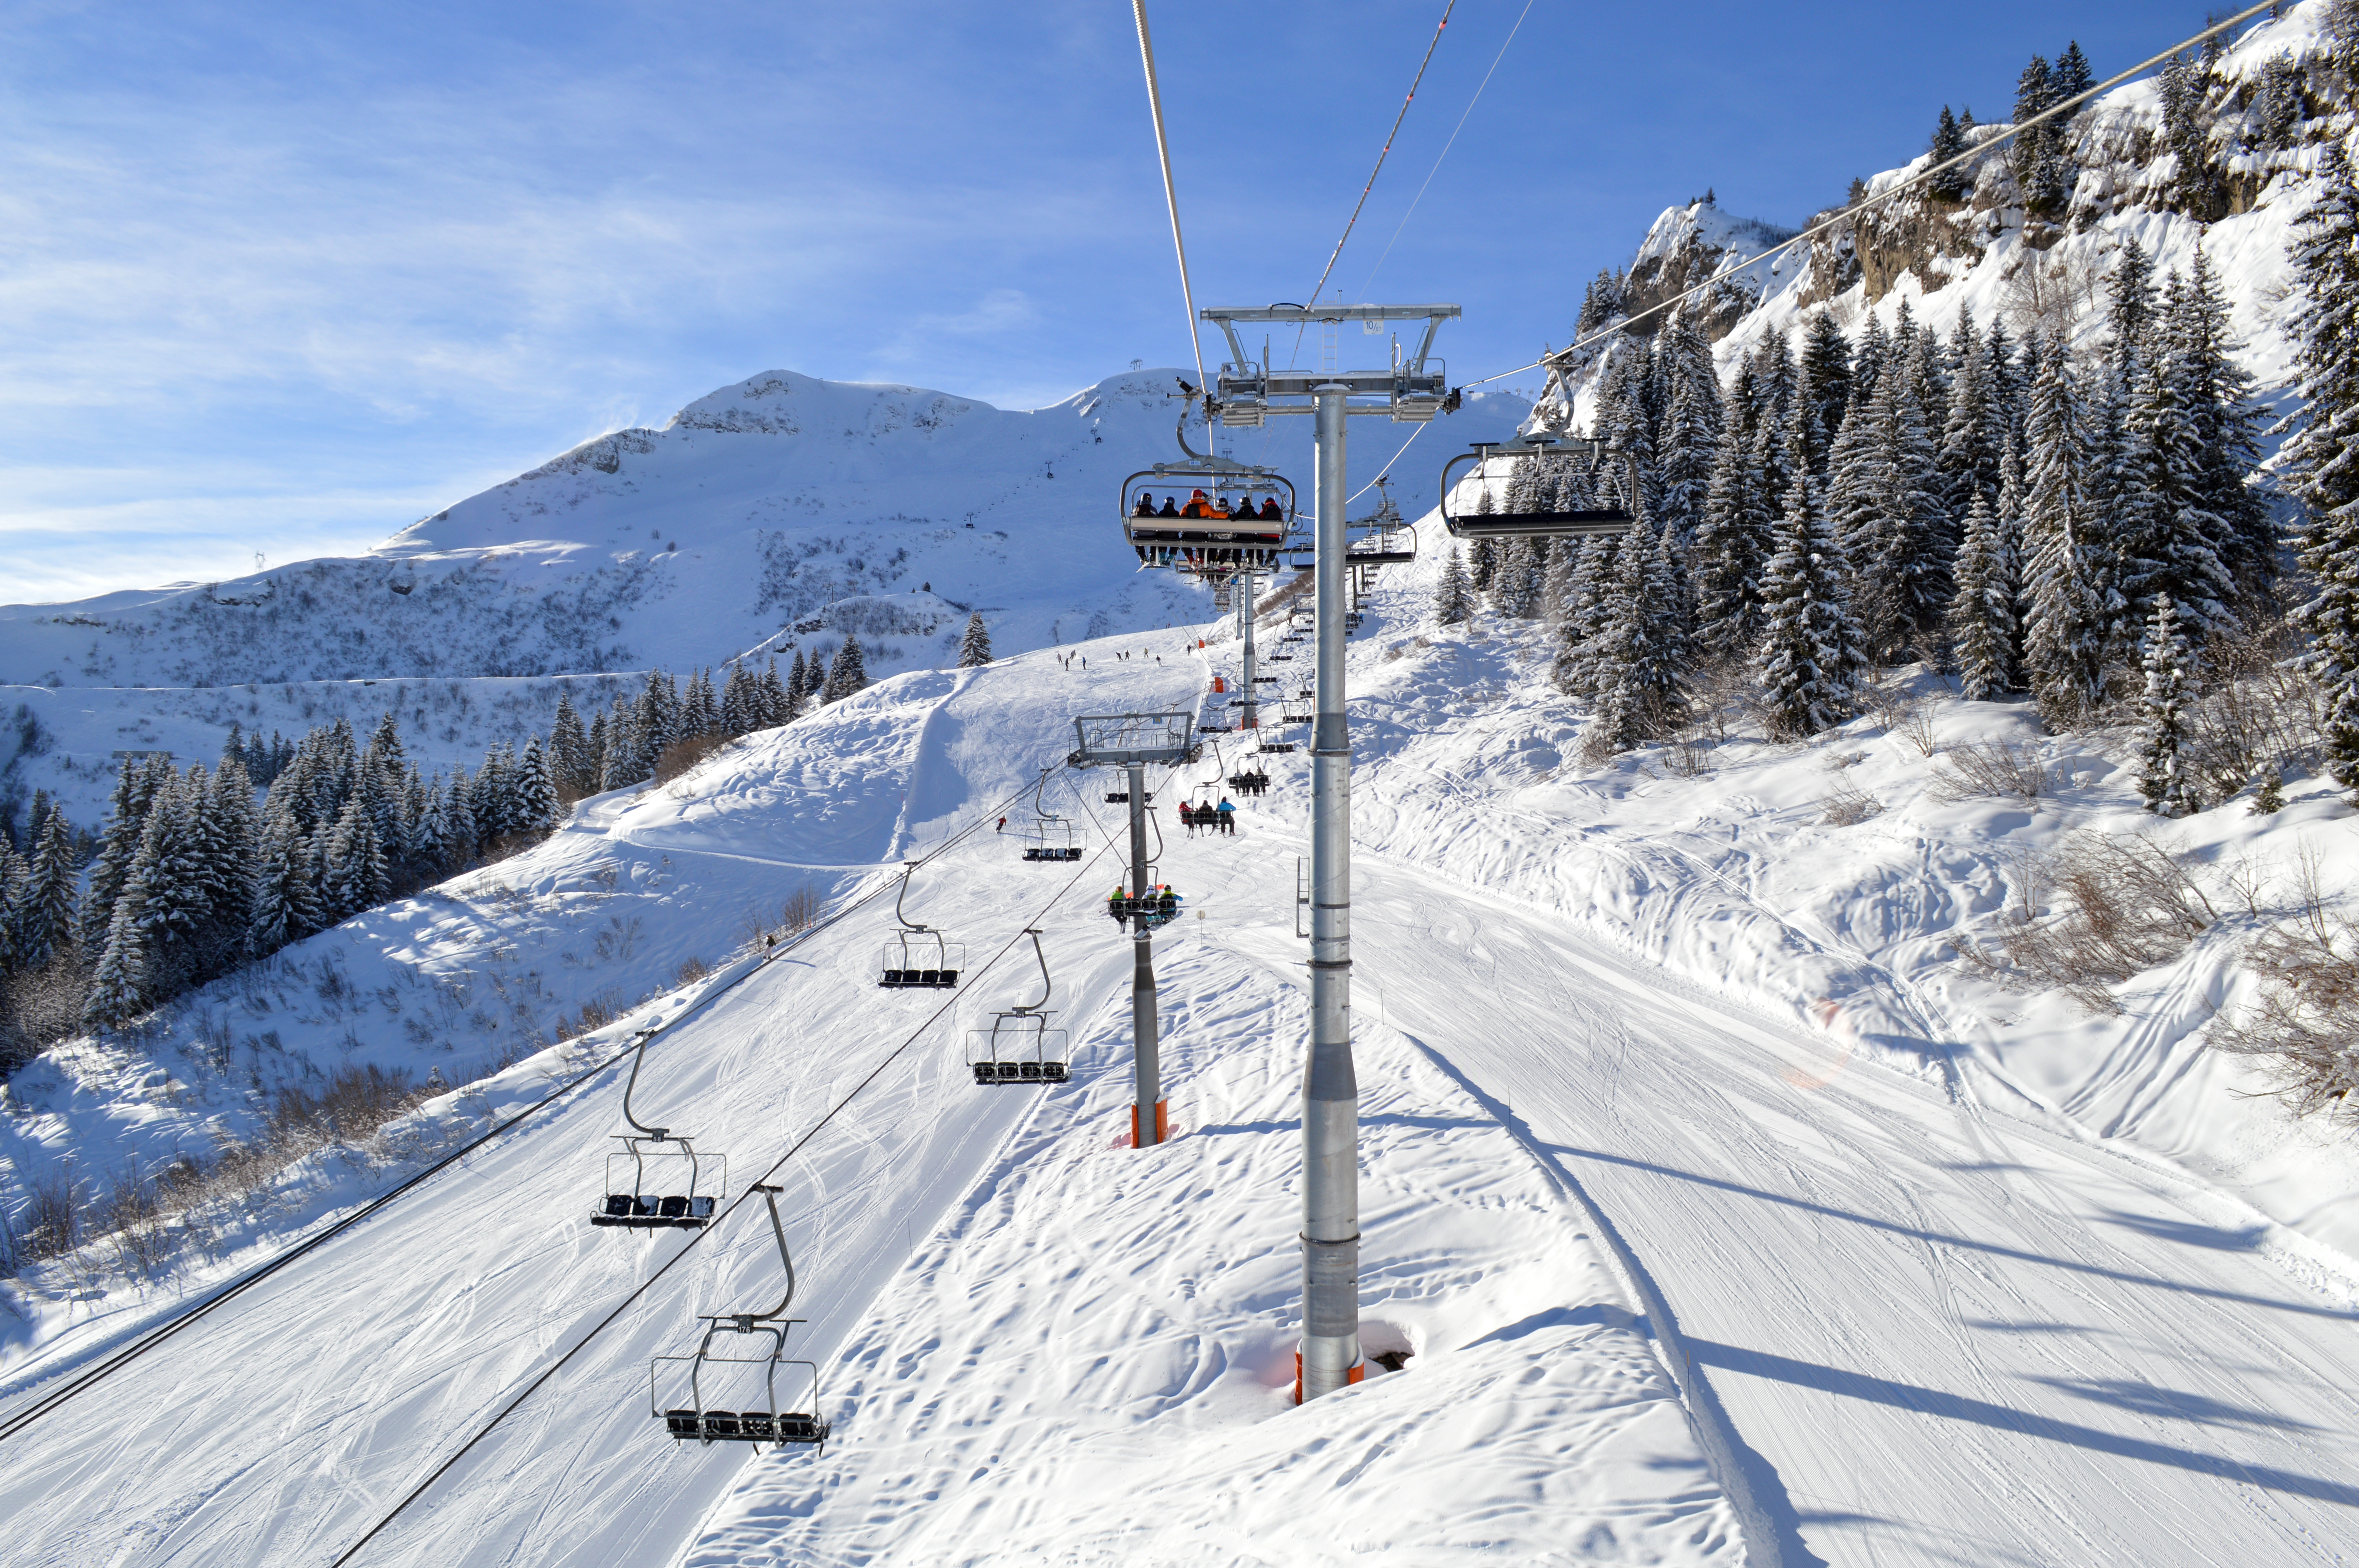 File:Chariande 2 and Chariande Express chairlifts, Samoëns.jpg ...